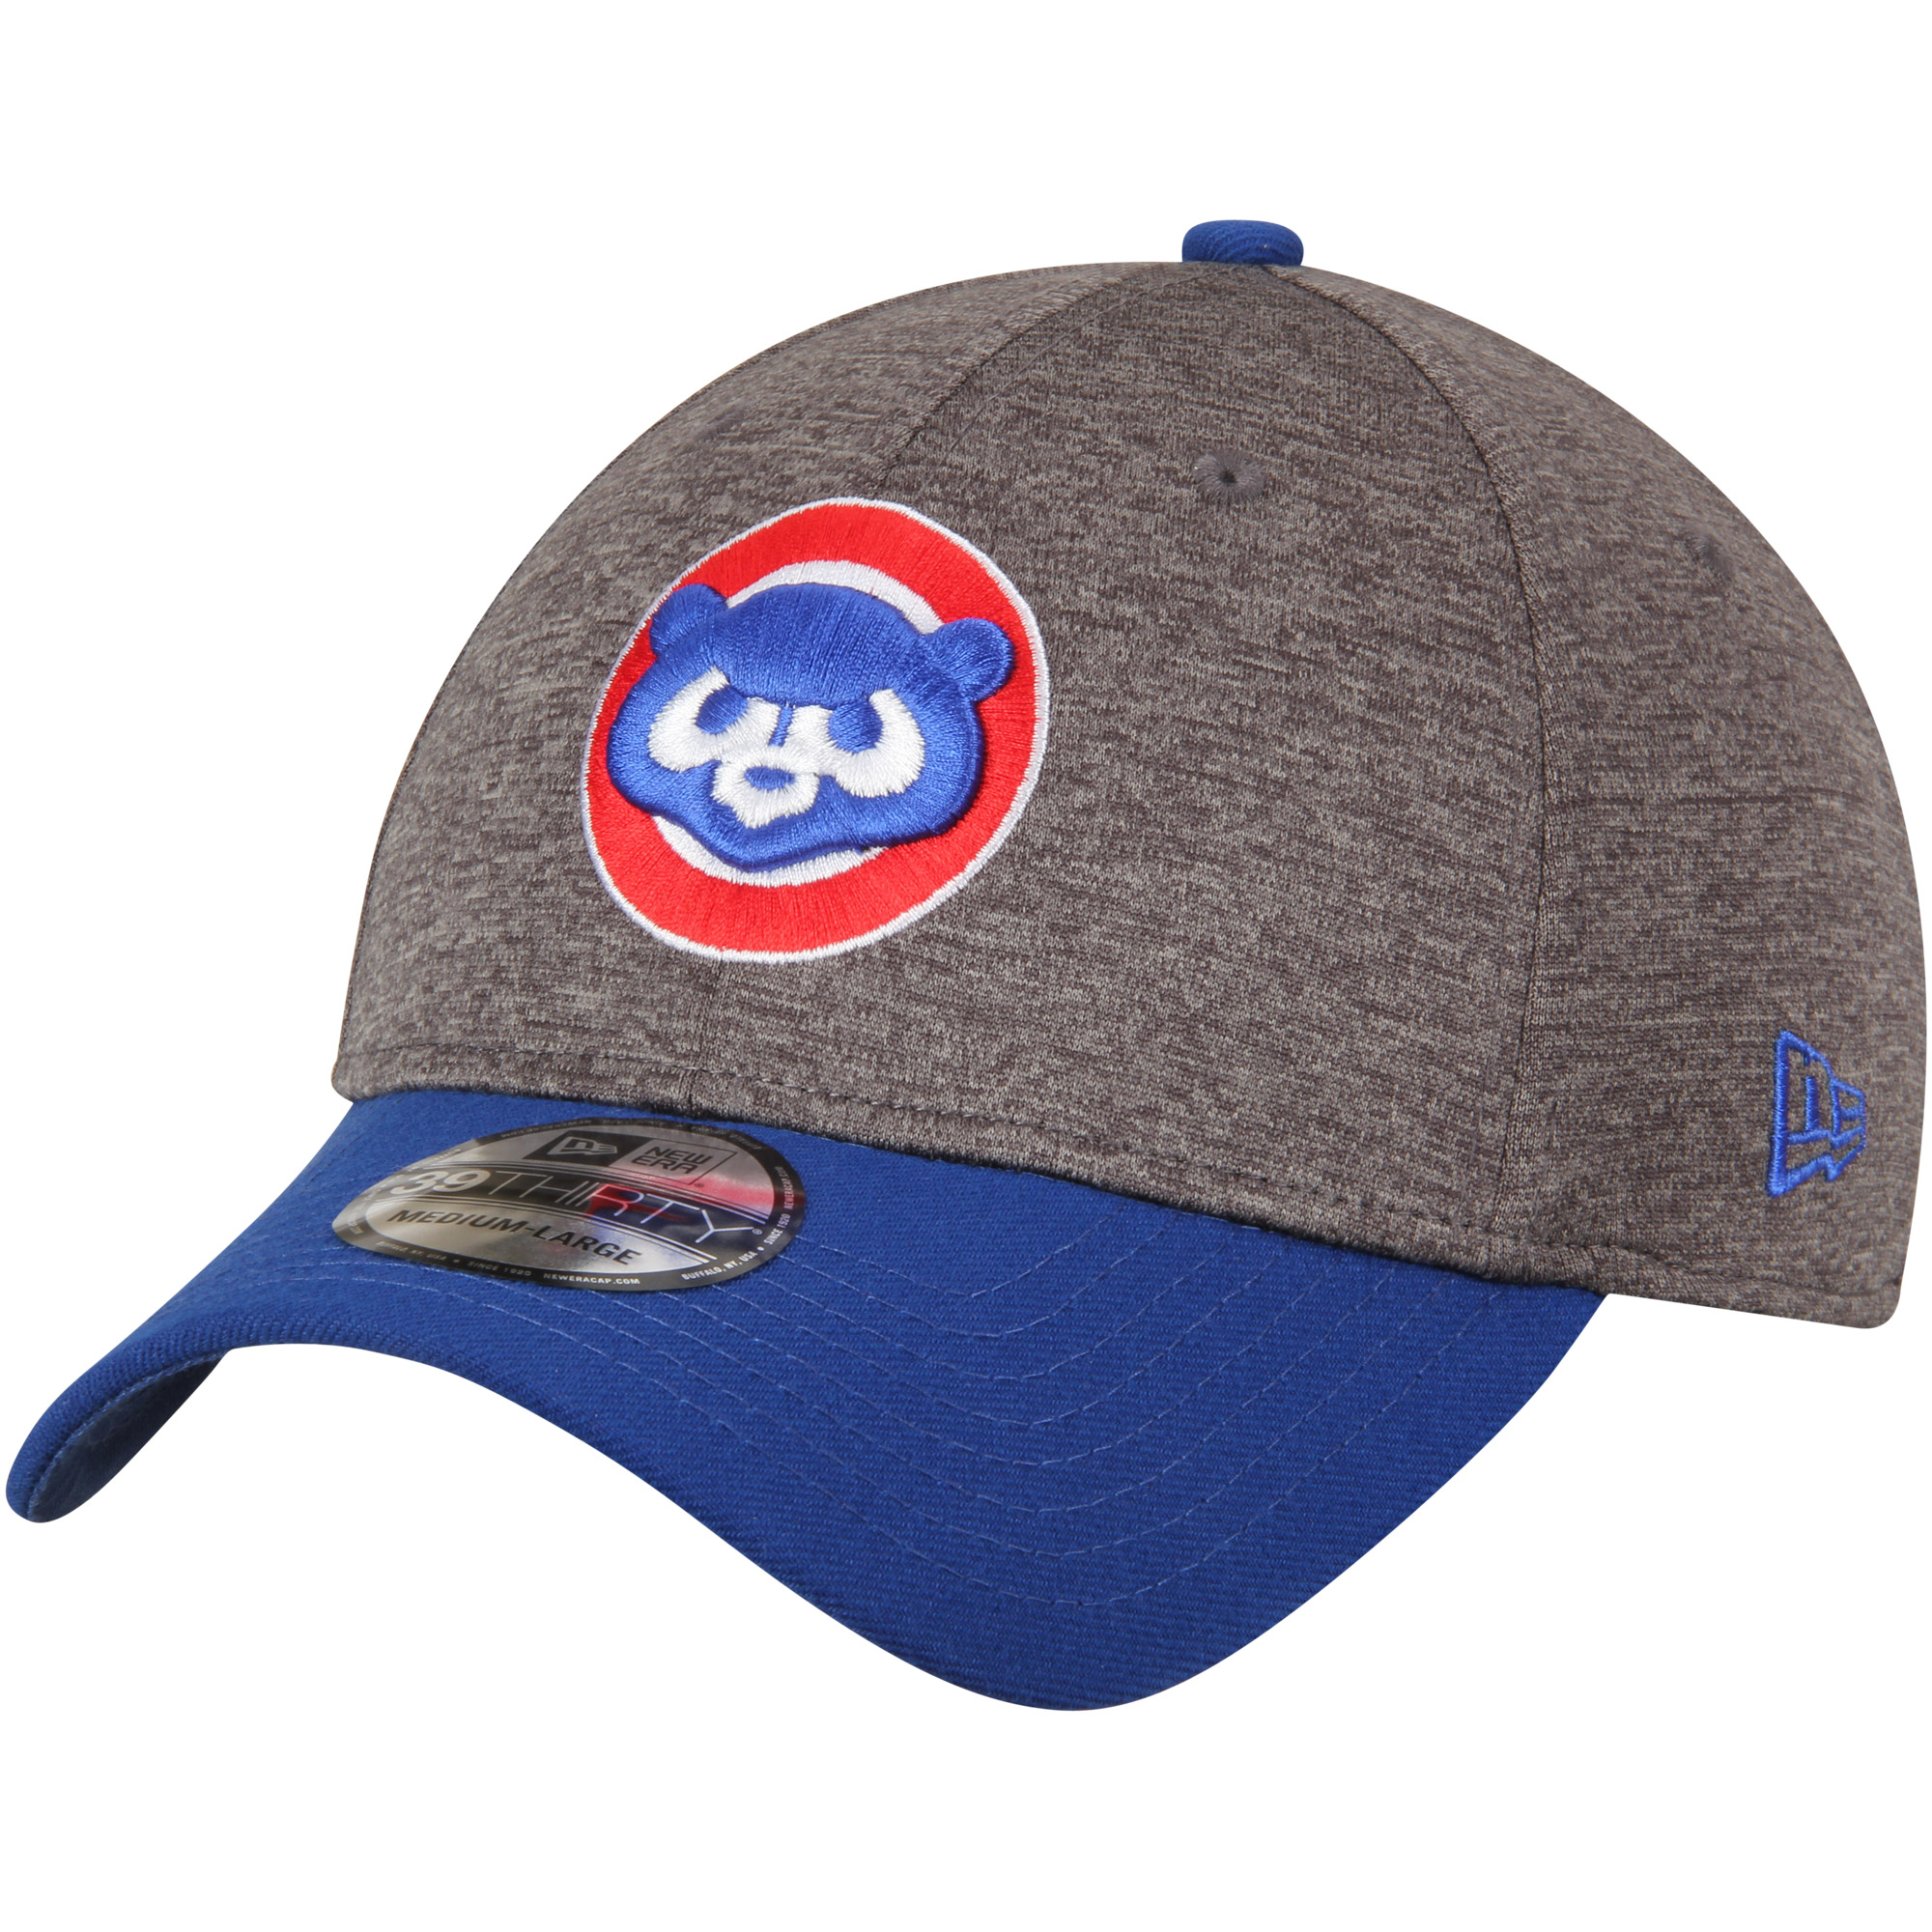 Chicago Cubs New Era Adult 39THIRTY Shadow Tech Logo Flex Hat - Heathered Gray/Royal - M/L